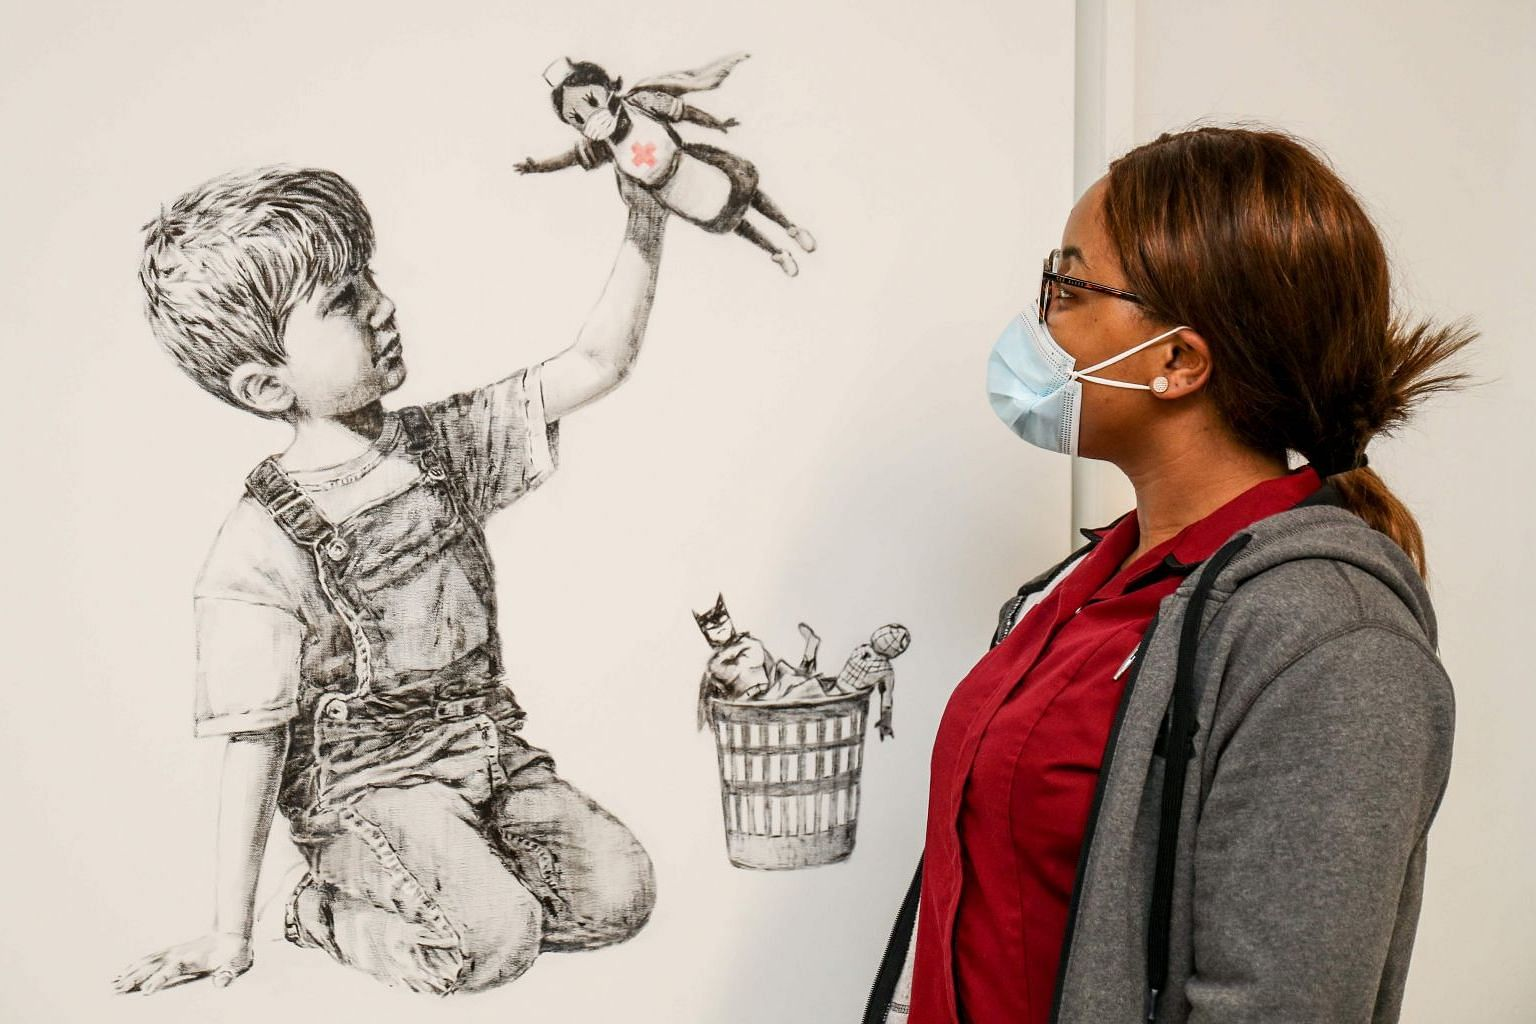 Banksy's new artwork Game Changer shows a boy playing with a nurse superhero toy, with figures of Batman and Spiderman discarded in a basket.